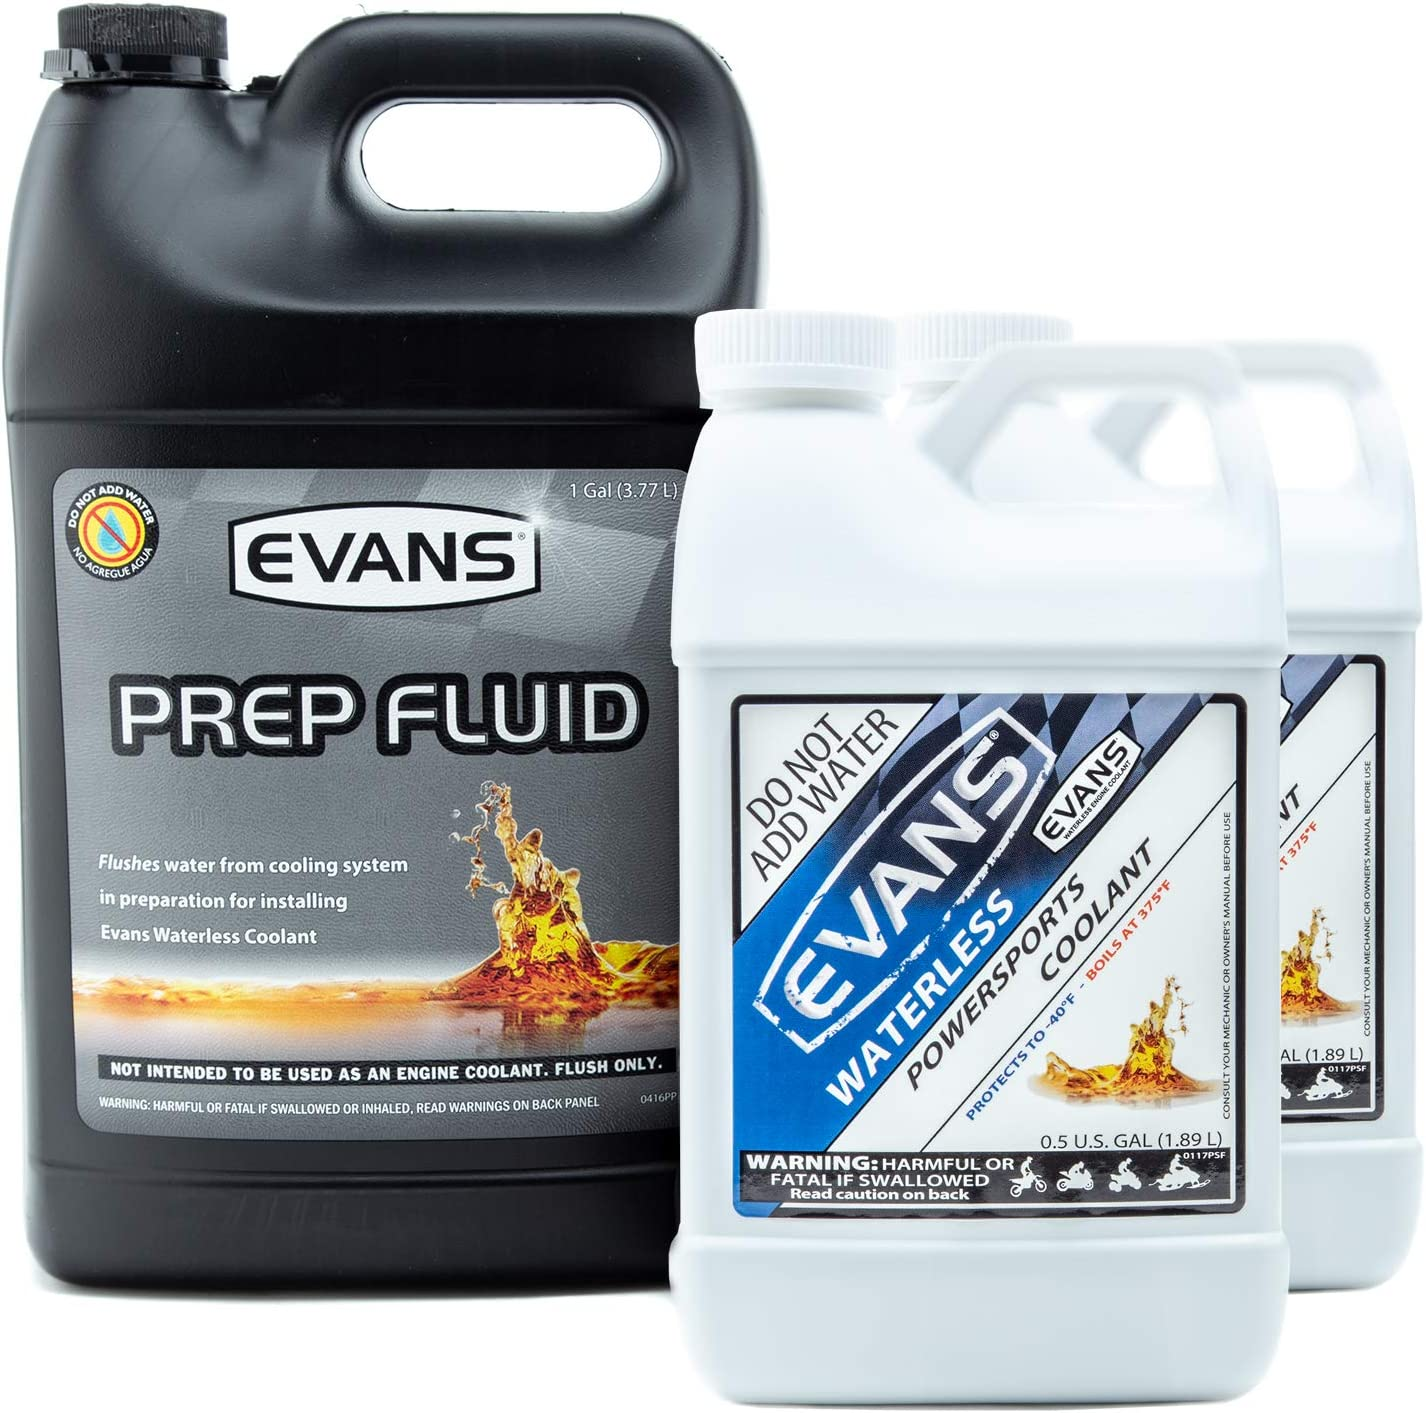 Evans Coolant EC72064 and EC42001 Powersports Waterless Coolant and Prep Fluid Combo Pack, 2 Gallon